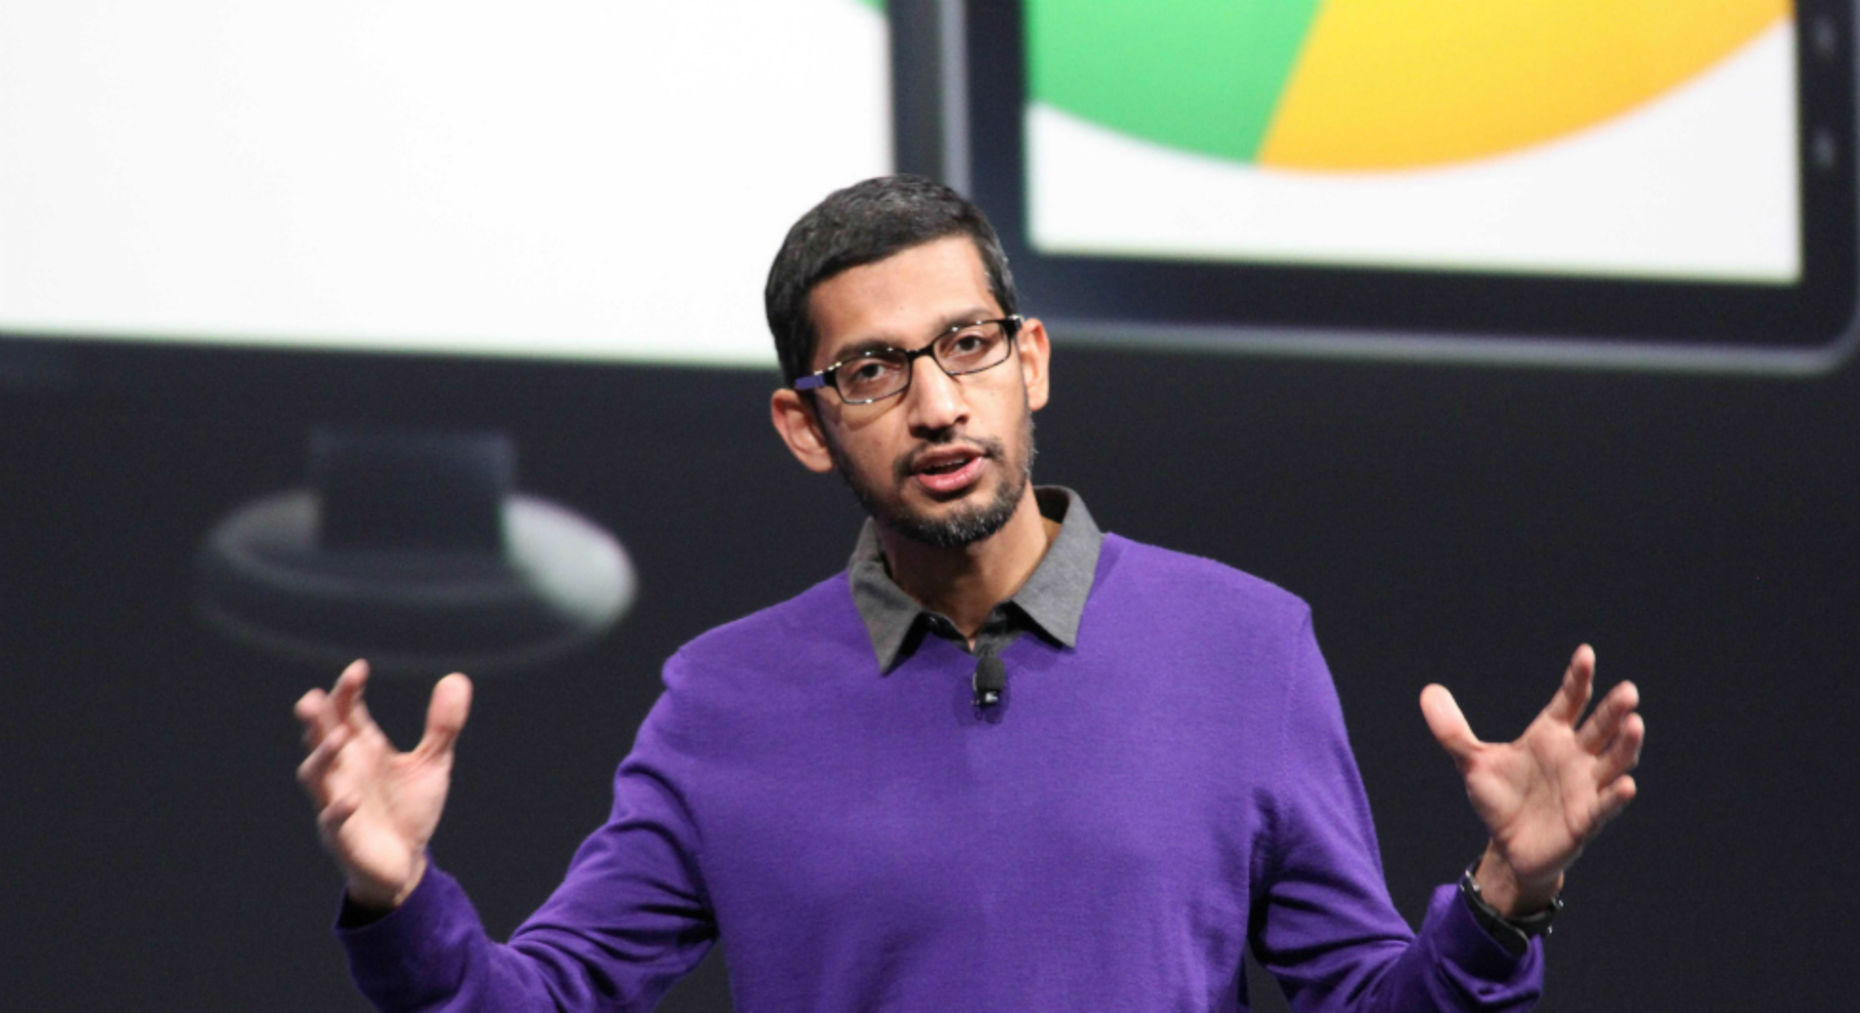 Google executive Sundar Pichai. Photo by Associated Press.